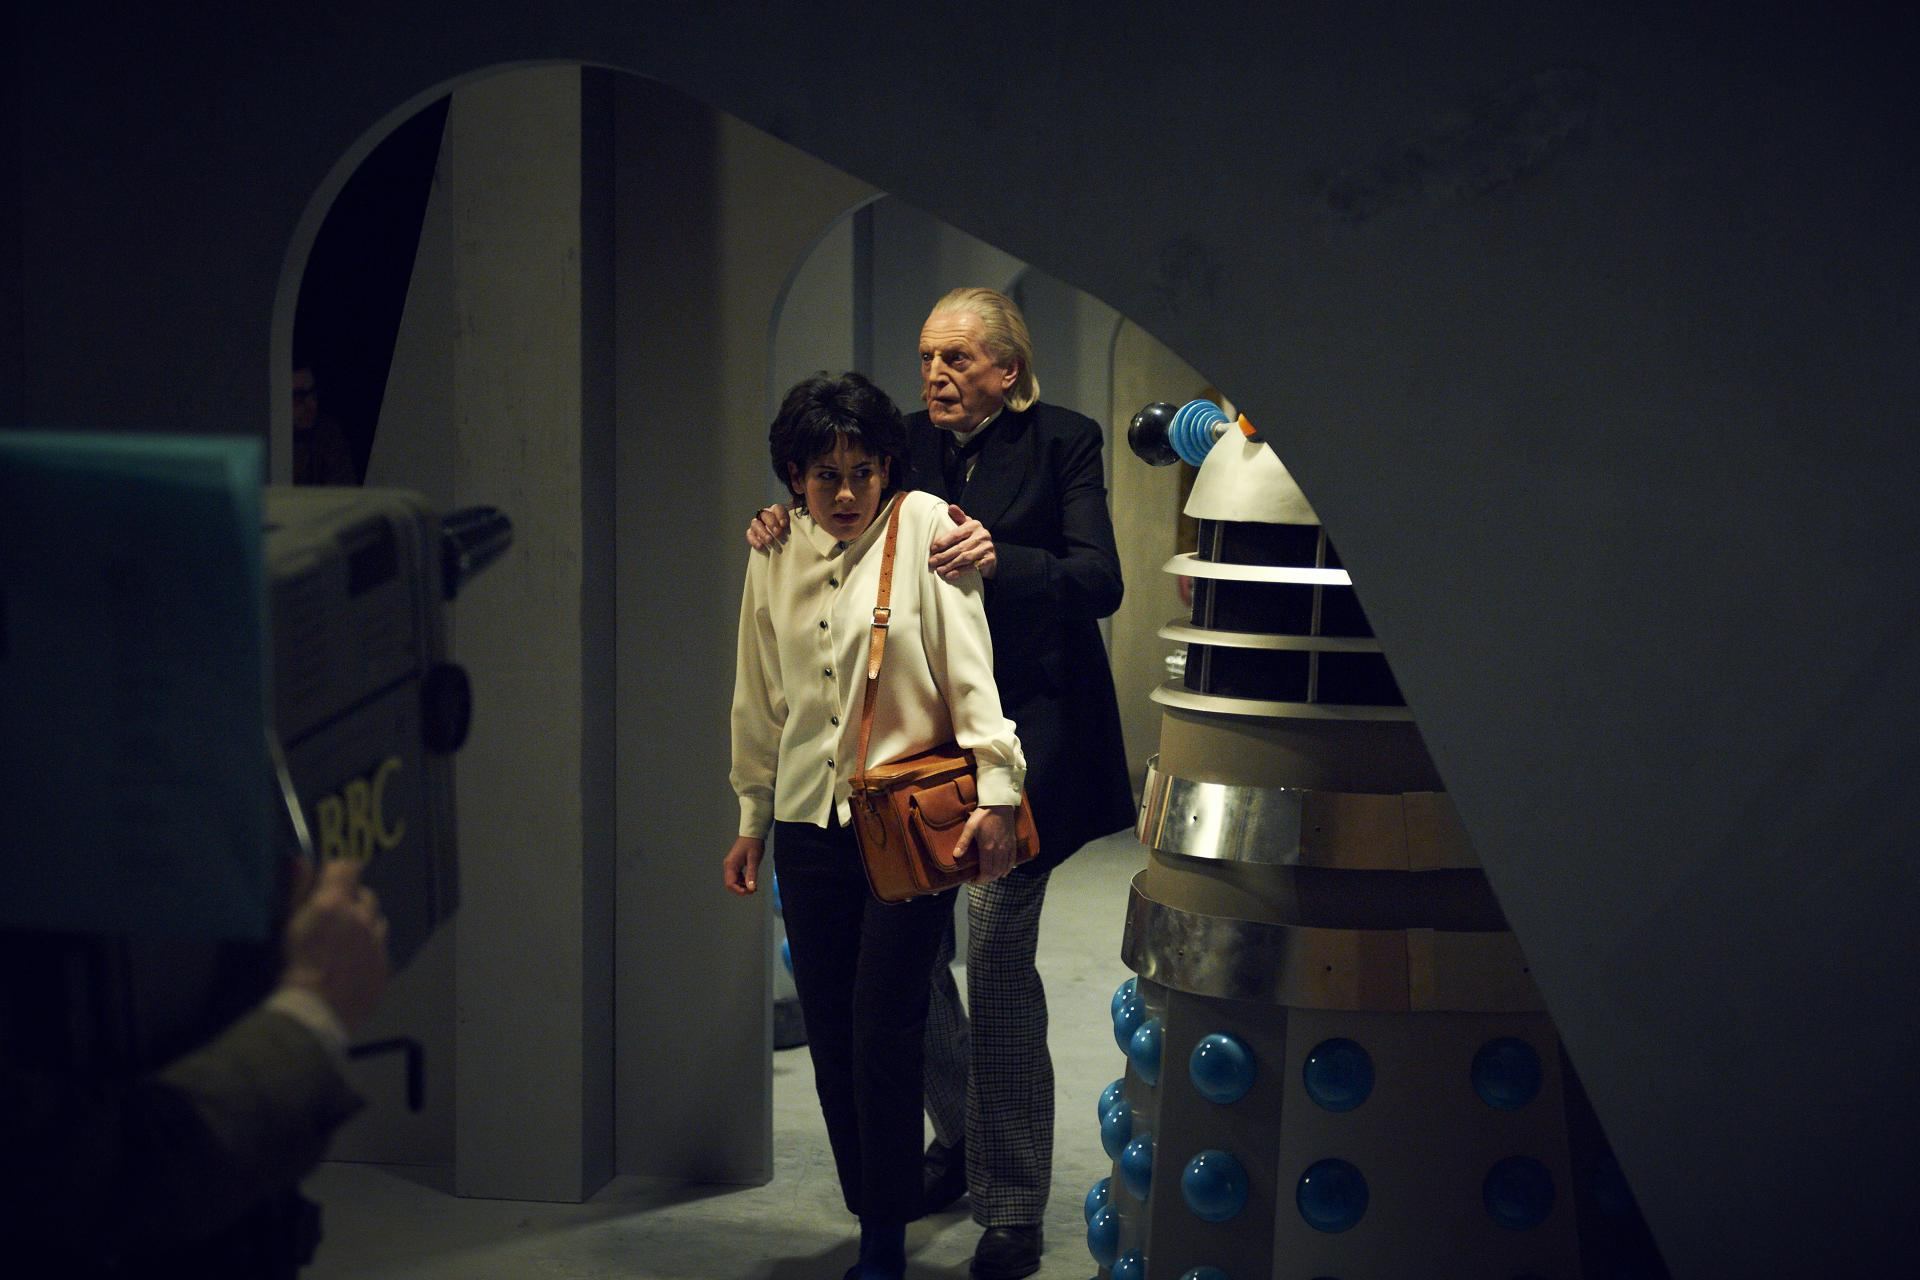 Recreating an iconic scene with Daleks (Credit: BBC/Hal Shinnie)